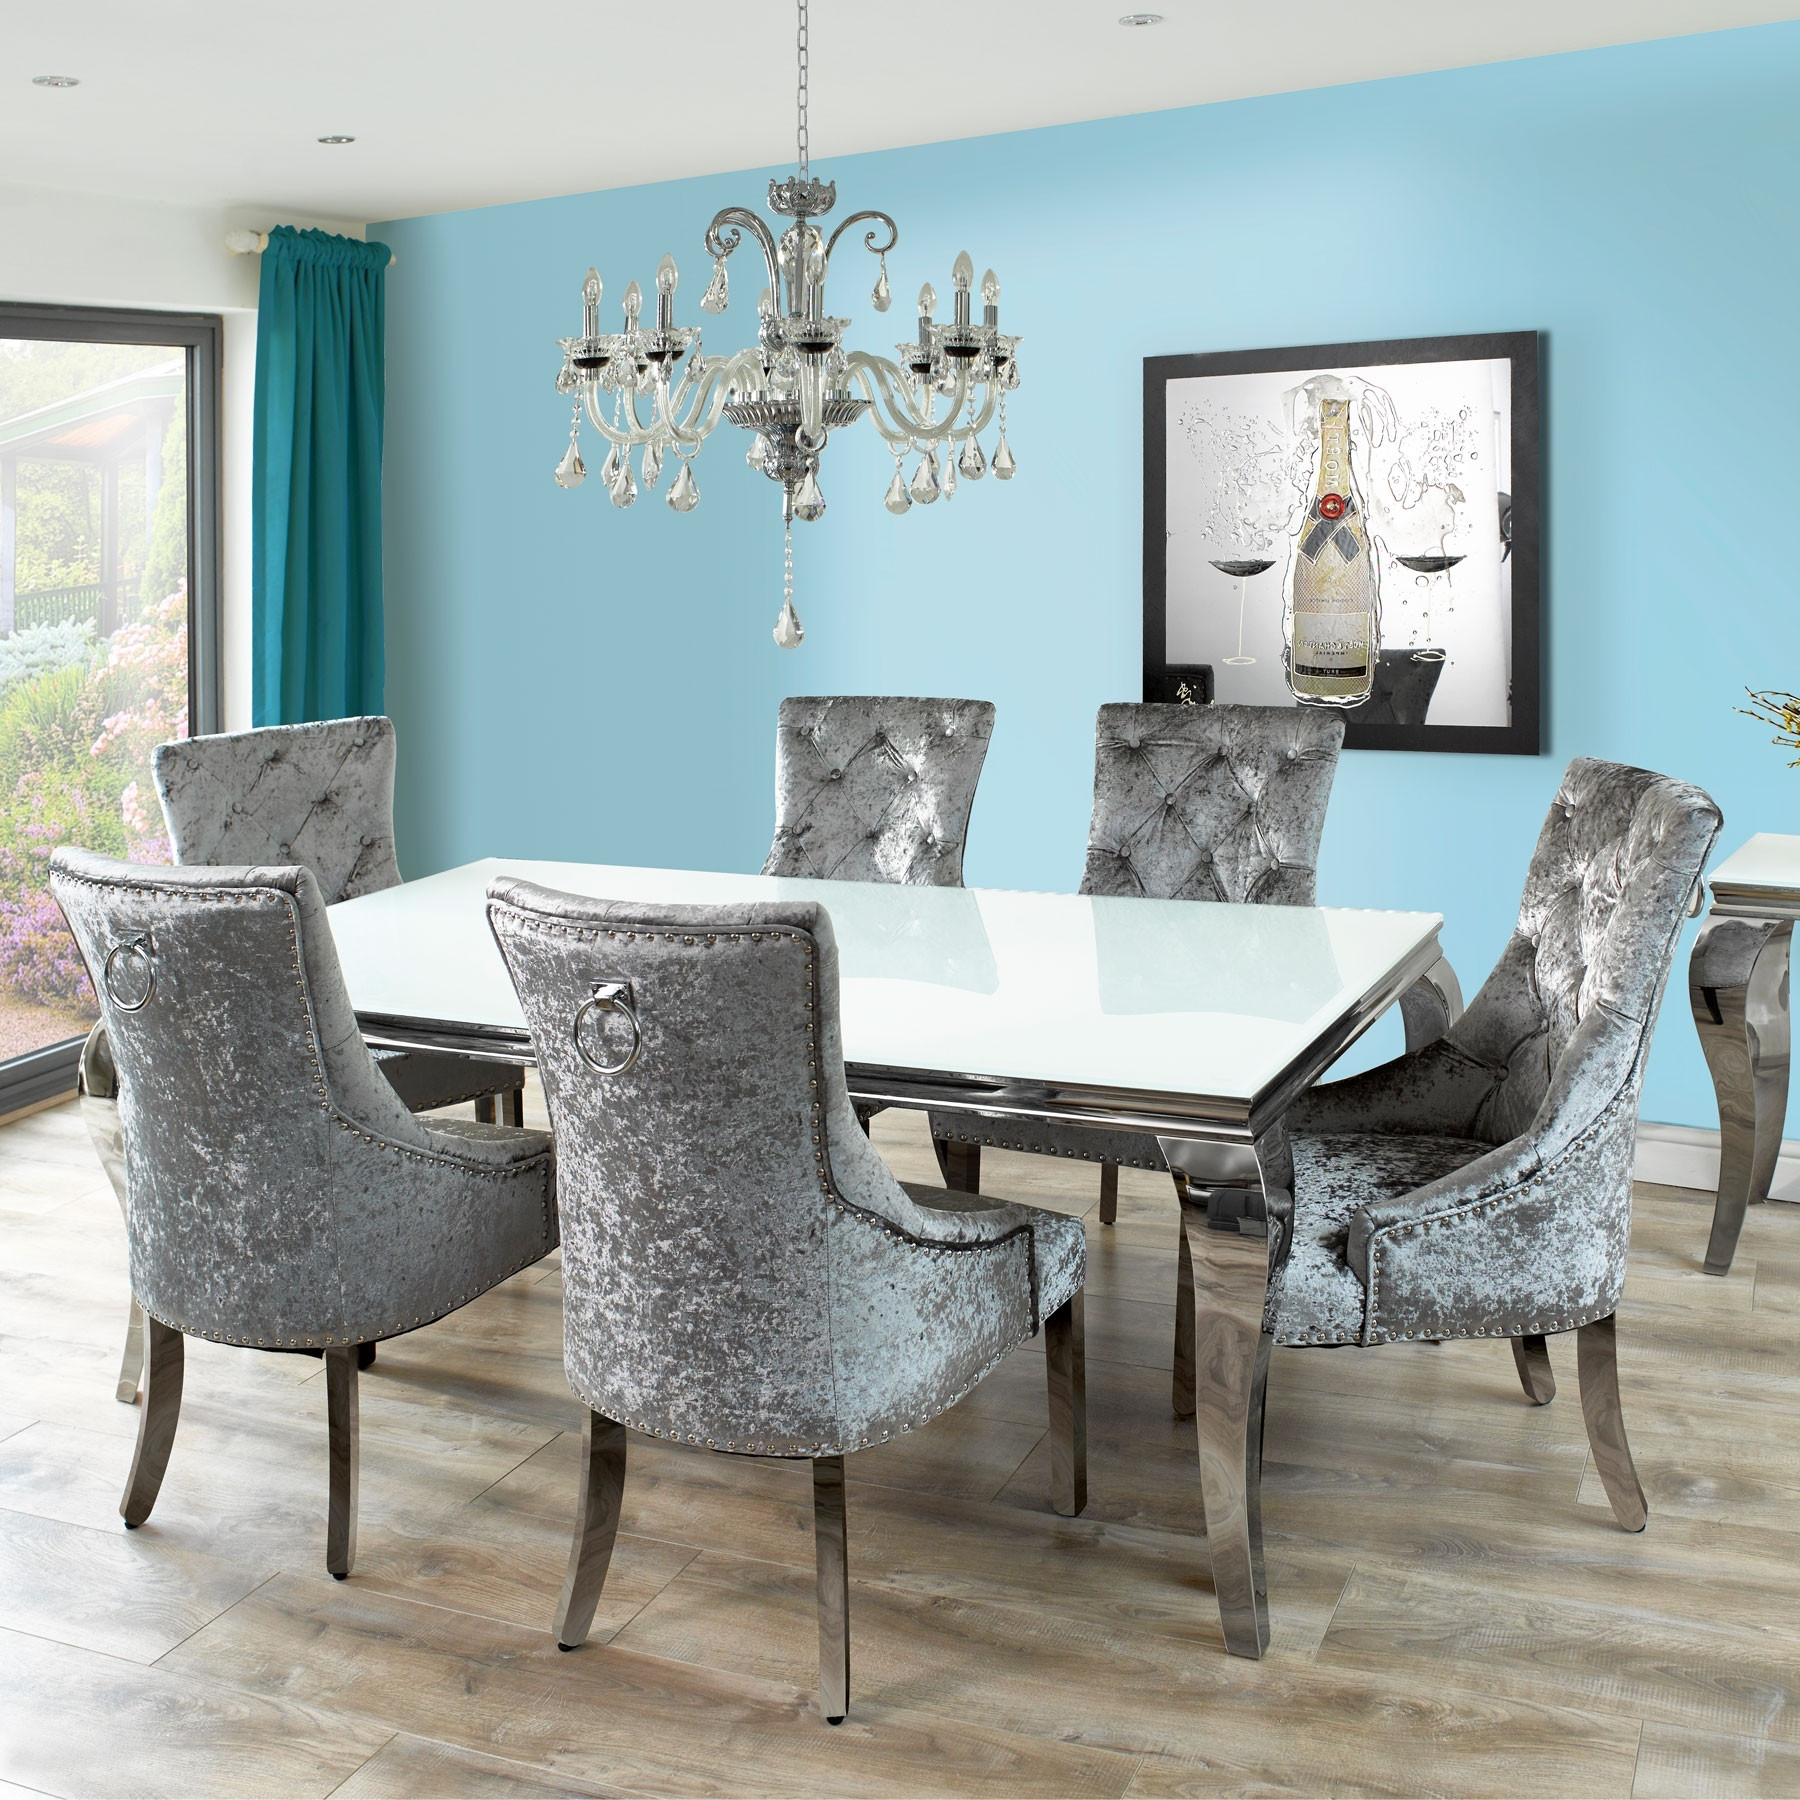 Most Current Fadenza Small White Glass Dining Table & 4 Silver Chairs With Throughout Small White Dining Tables (View 13 of 25)